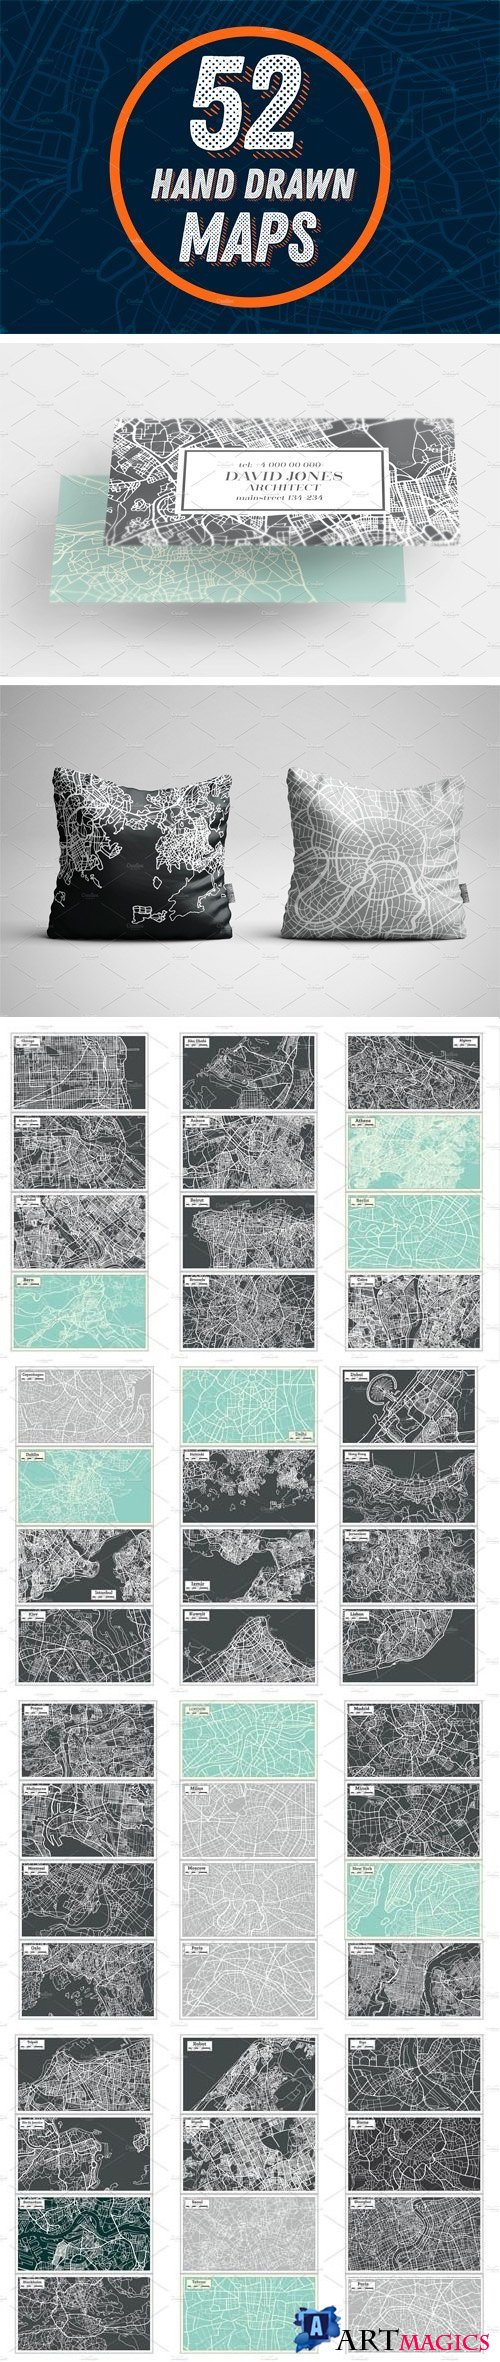 52 Hand Drawn Maps Set - 2162044